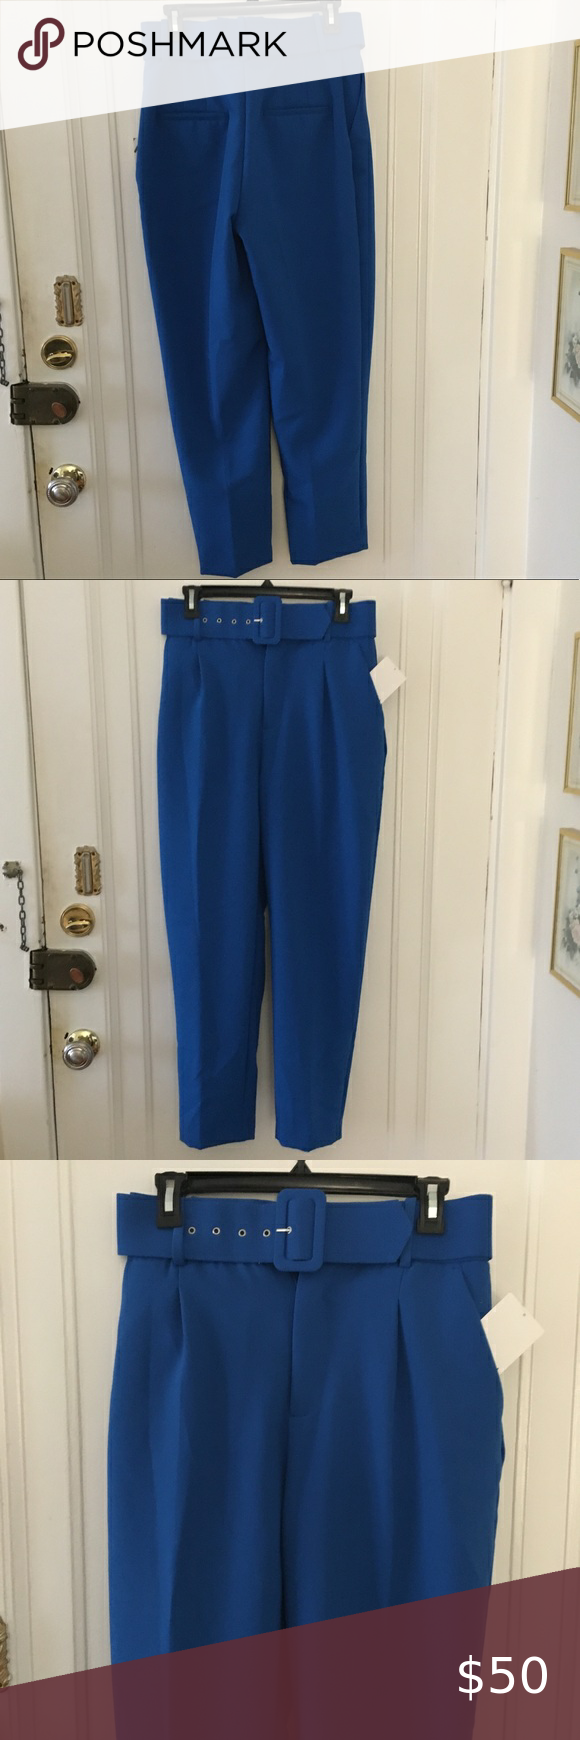 Zara Blue High Waisted Belted Pleated Pants Zara Blue High Waisted Belted Pleated Pants  Size Medium  Brand new with tags.  Great for work / career. Beautiful blue color and great alternative to the usually black pair of pants.  High-waisted pants. Front pockets and back false welt pockets. Front pleat detail. Self belt with lined buckle. Front zip, metal hook and inside .  012020 AB 0131 Zara Pants